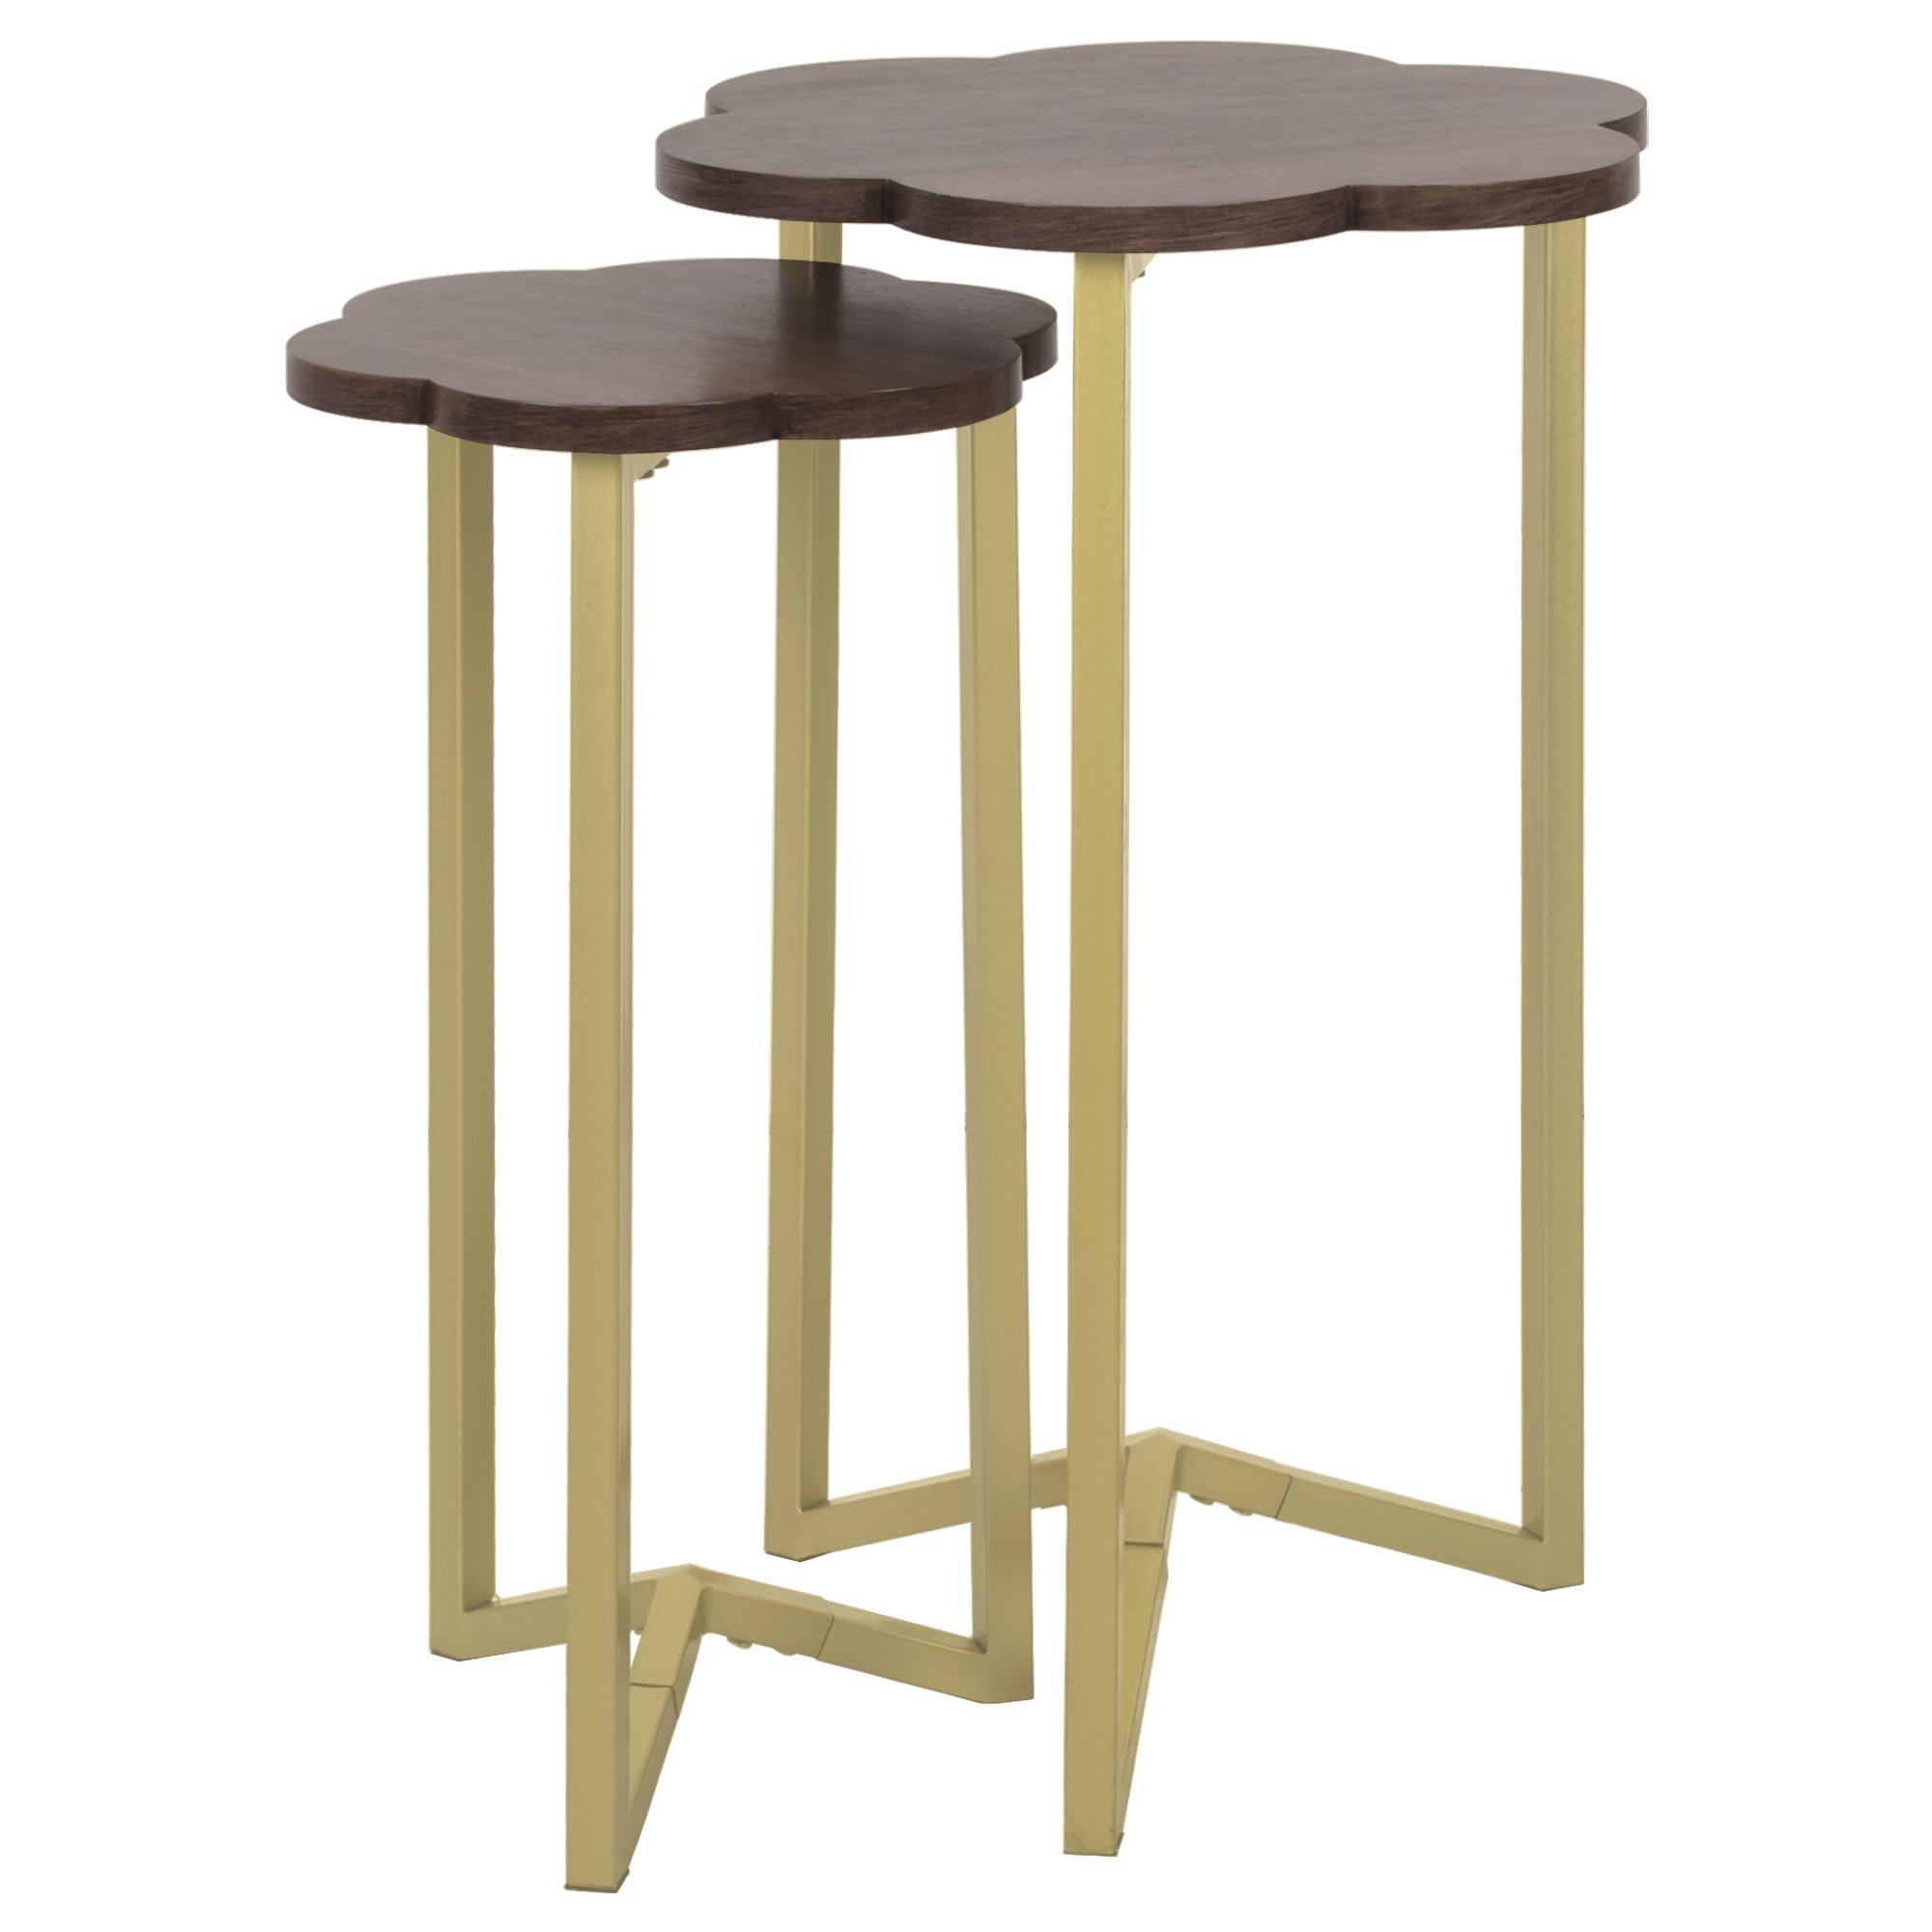 Silverwood FT1263-GLD-RGR Daphne Nesting Accent Tables (2pc), 17'' DIA x 27'' H by Silverwood (Image #2)